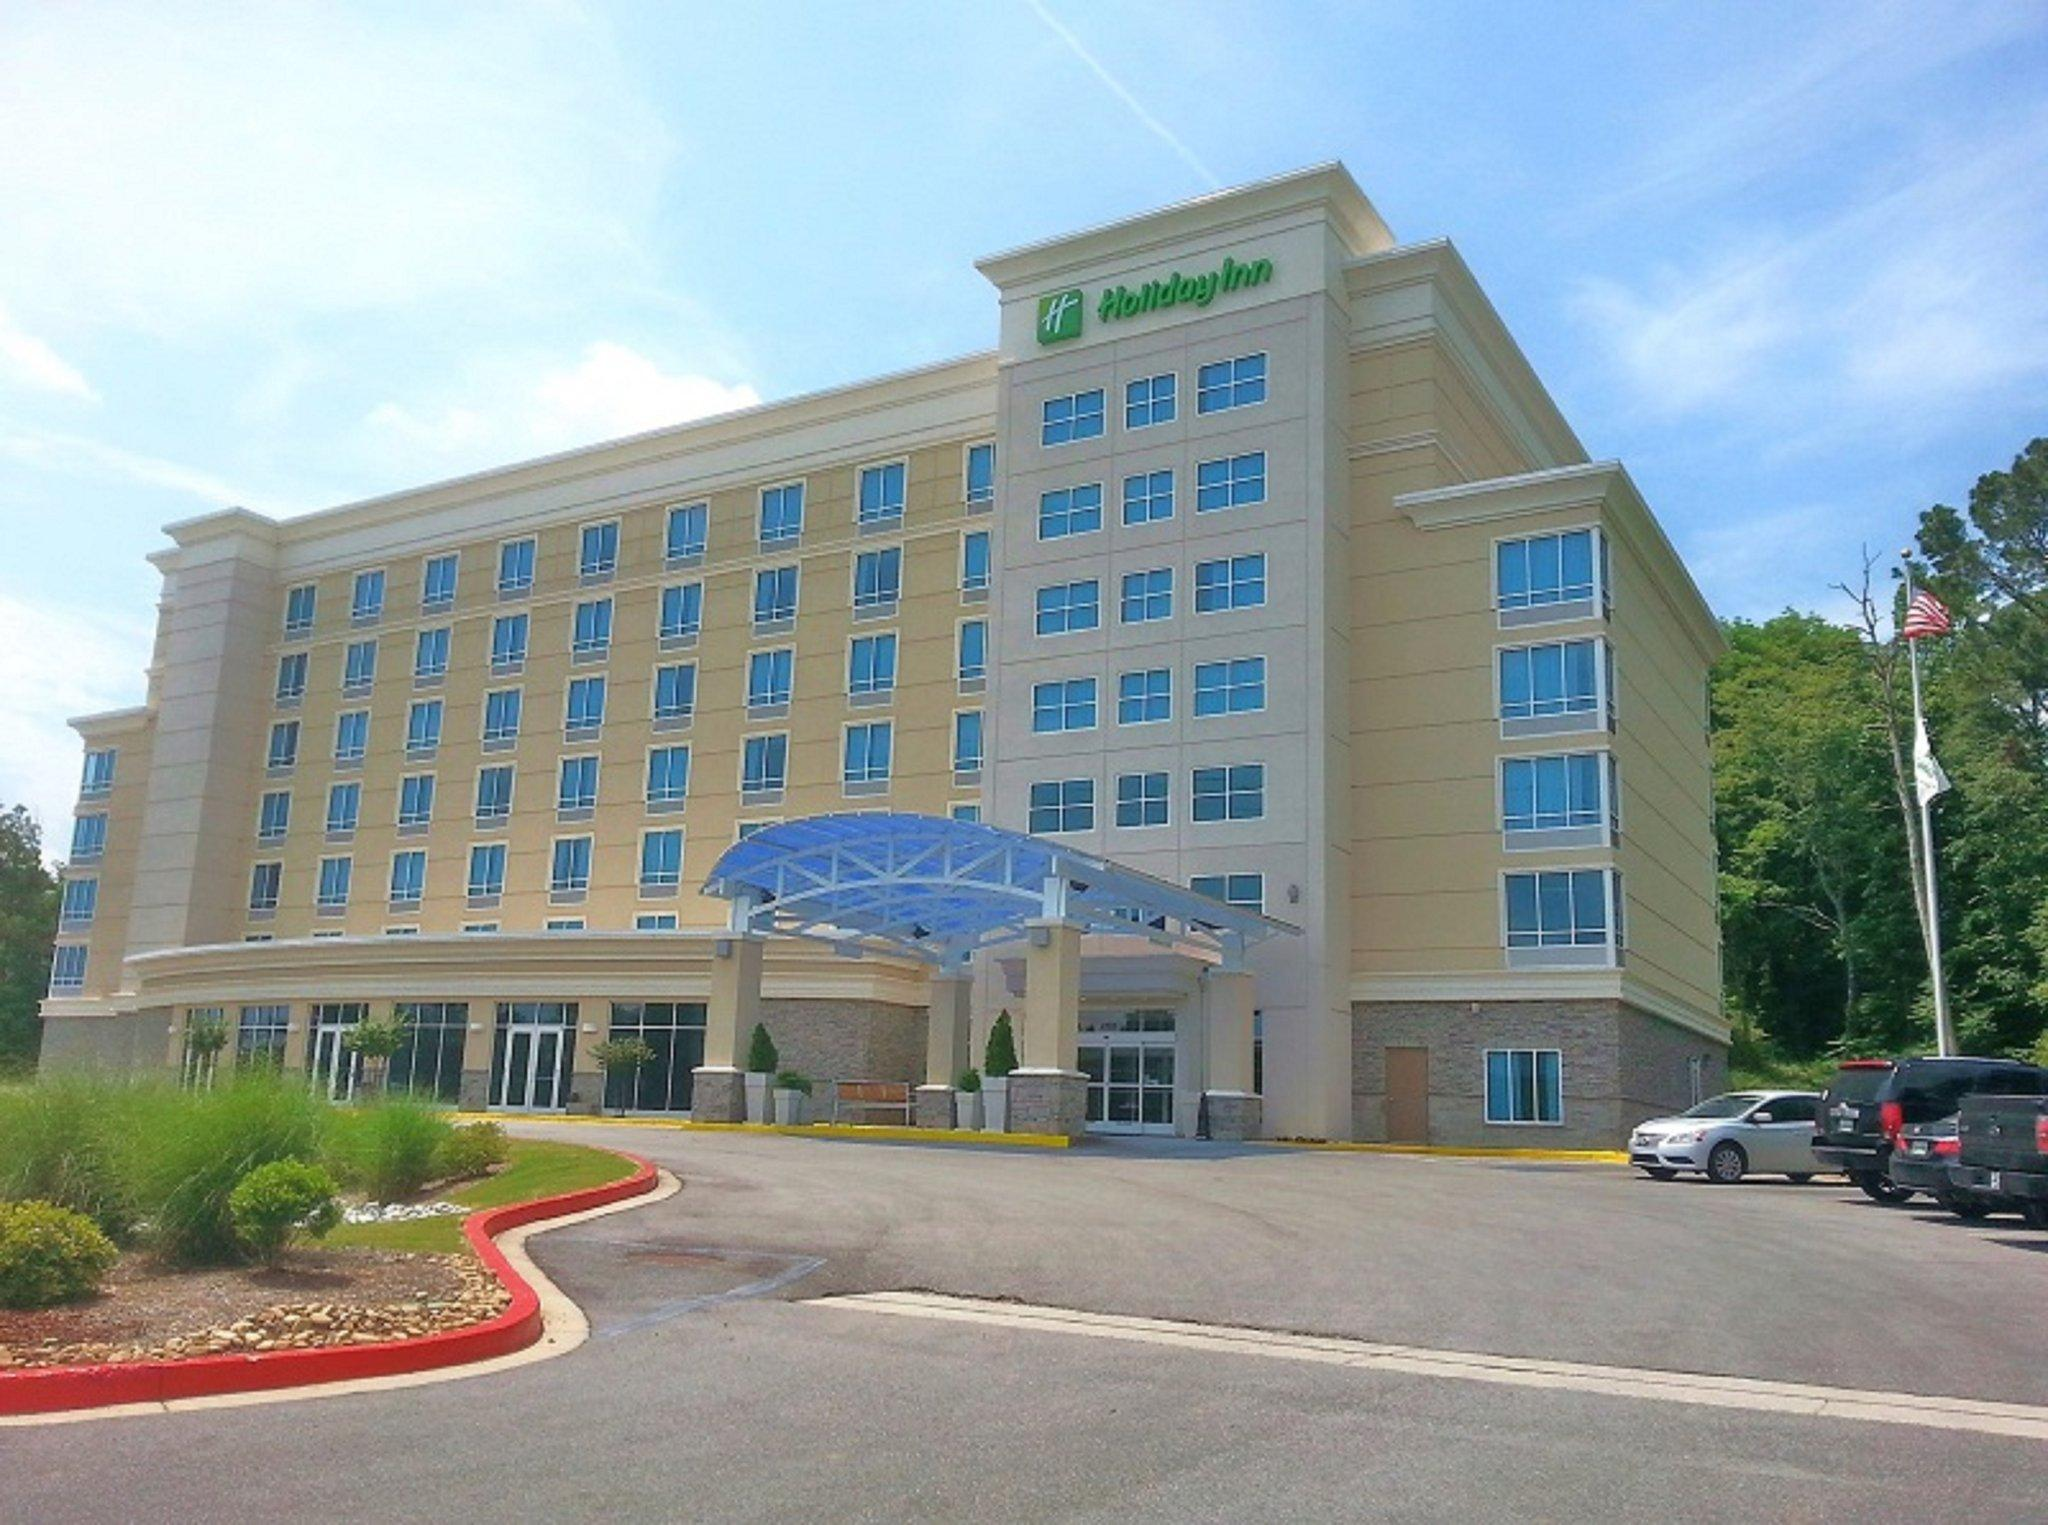 Holiday Inn - Hamilton Place